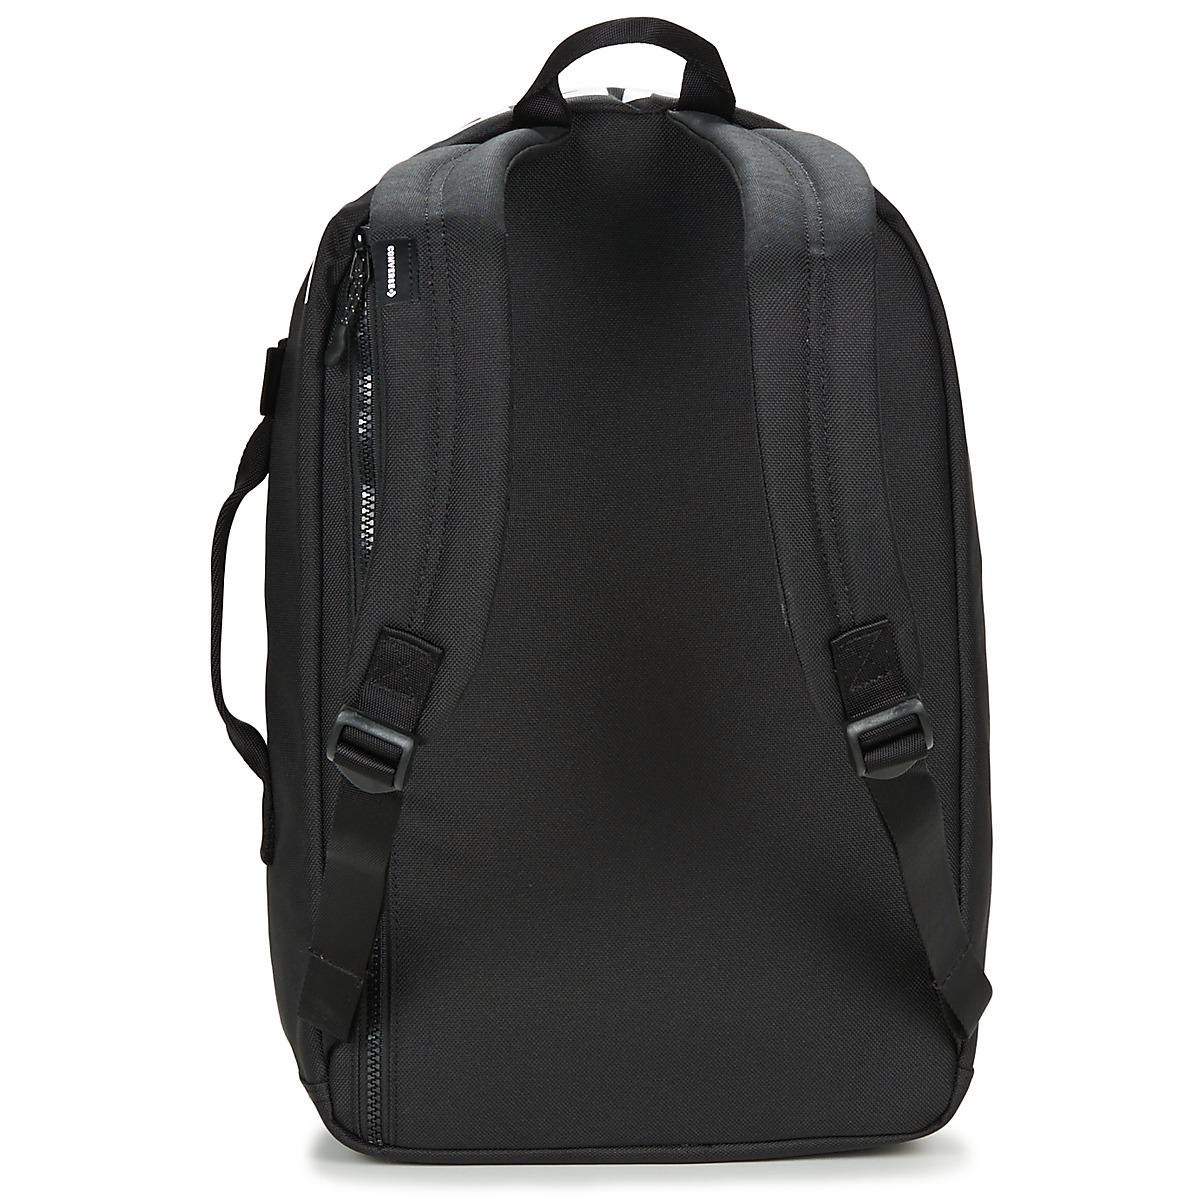 Converse Street 22 Backpack Women s Backpack In Black in Black - Lyst a19b7a93a3007